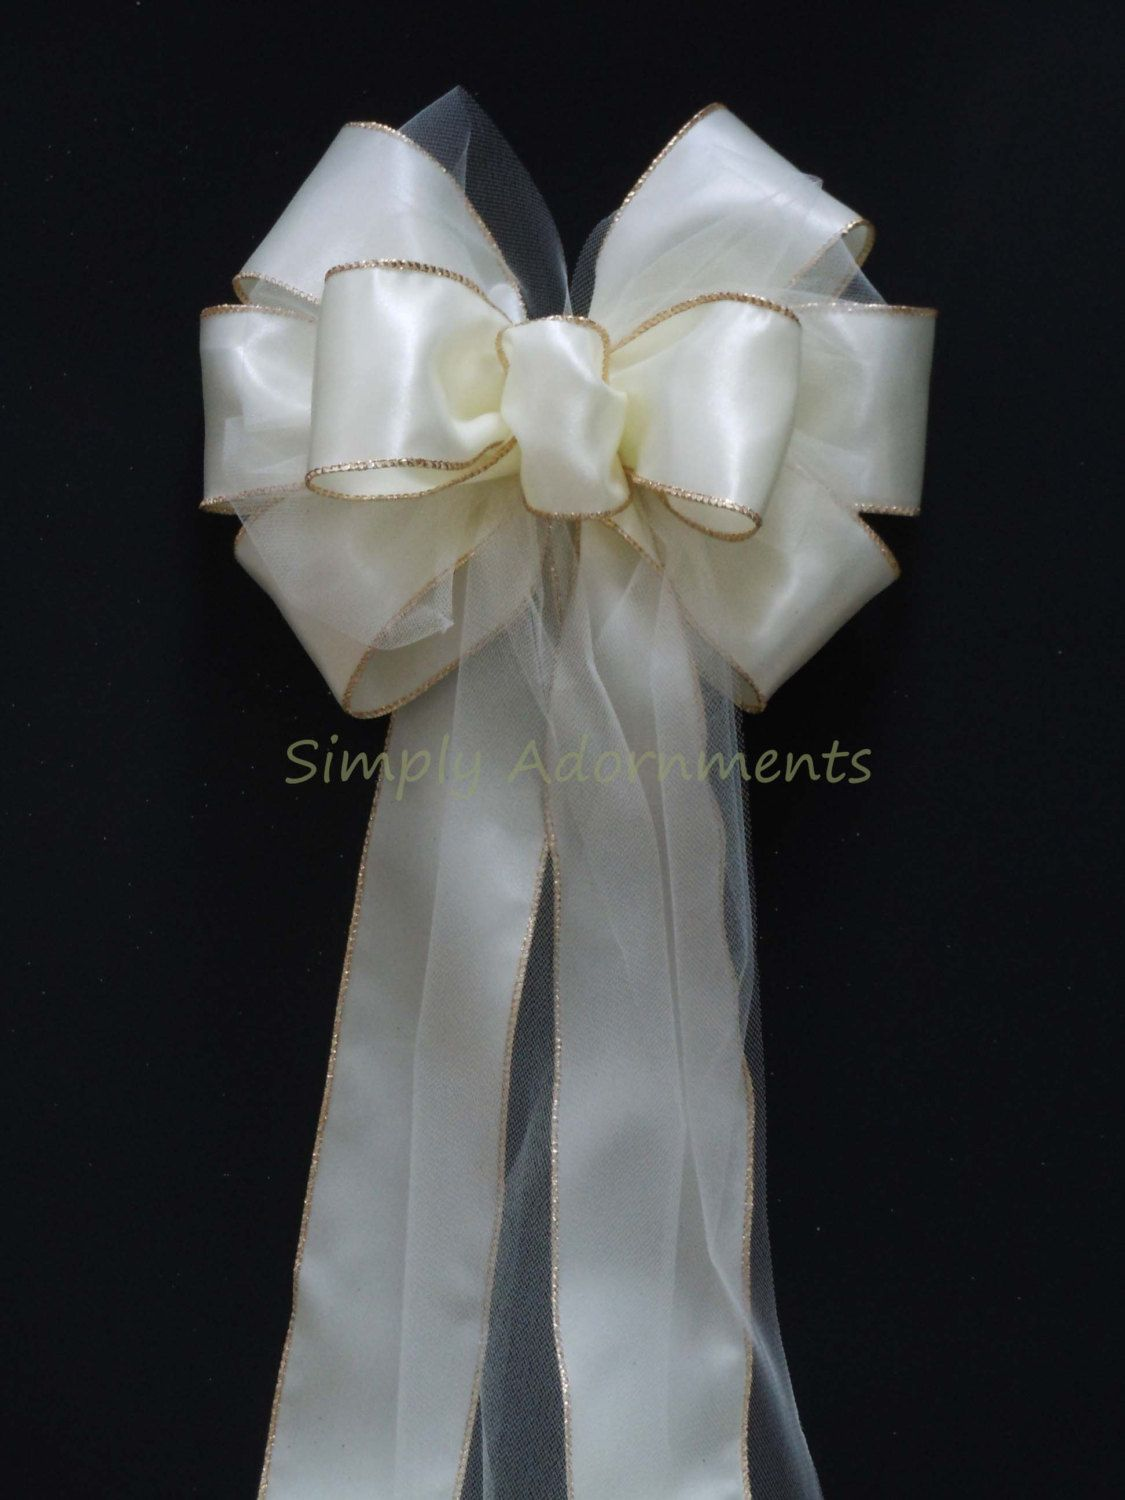 10 Ivory Satin Tulle Wedding Pew Bows Church Aisles decorations ...